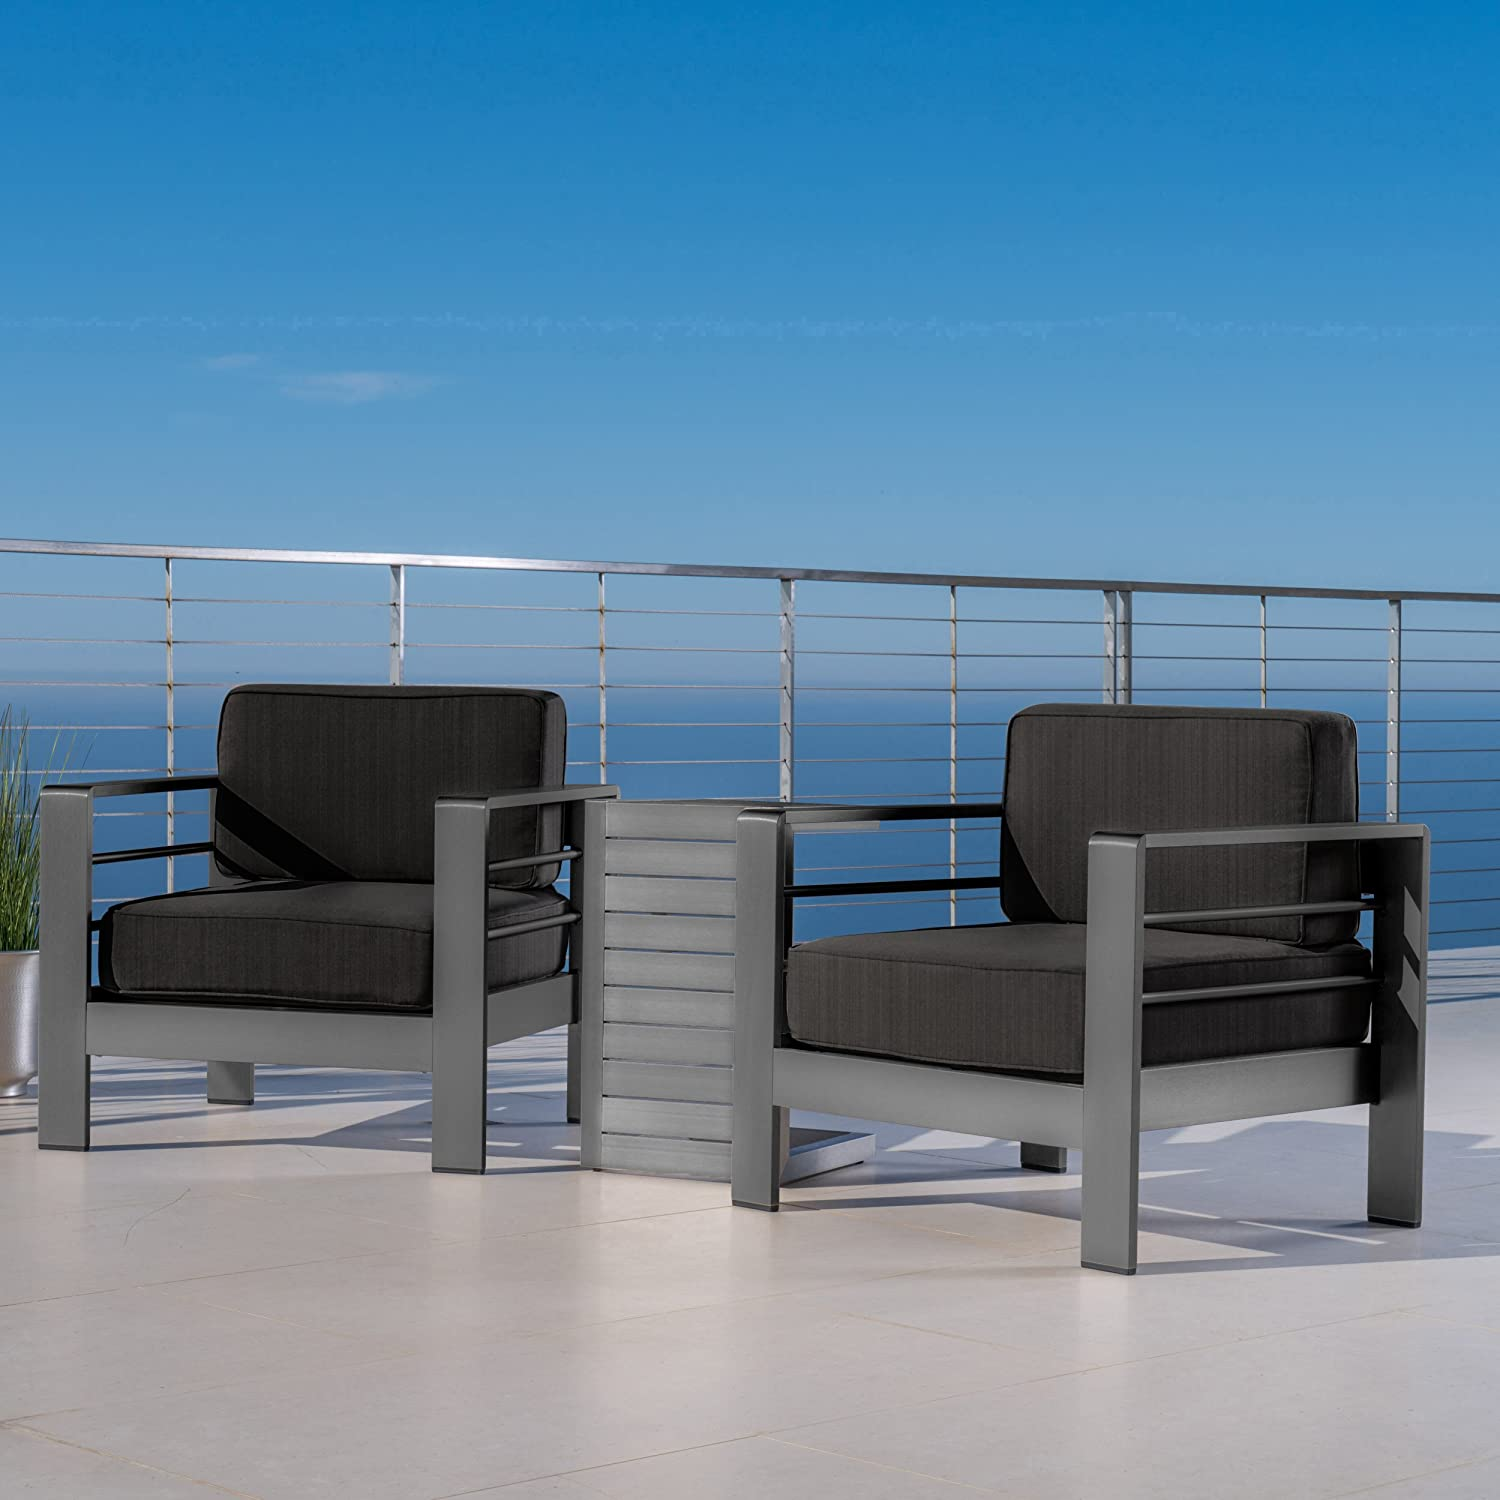 Christopher Knight Home Crested Bay Patio Furniture Outdoor Grey Aluminum 3 Piece Chat Set with Dark Grey Water Resistant Cushions